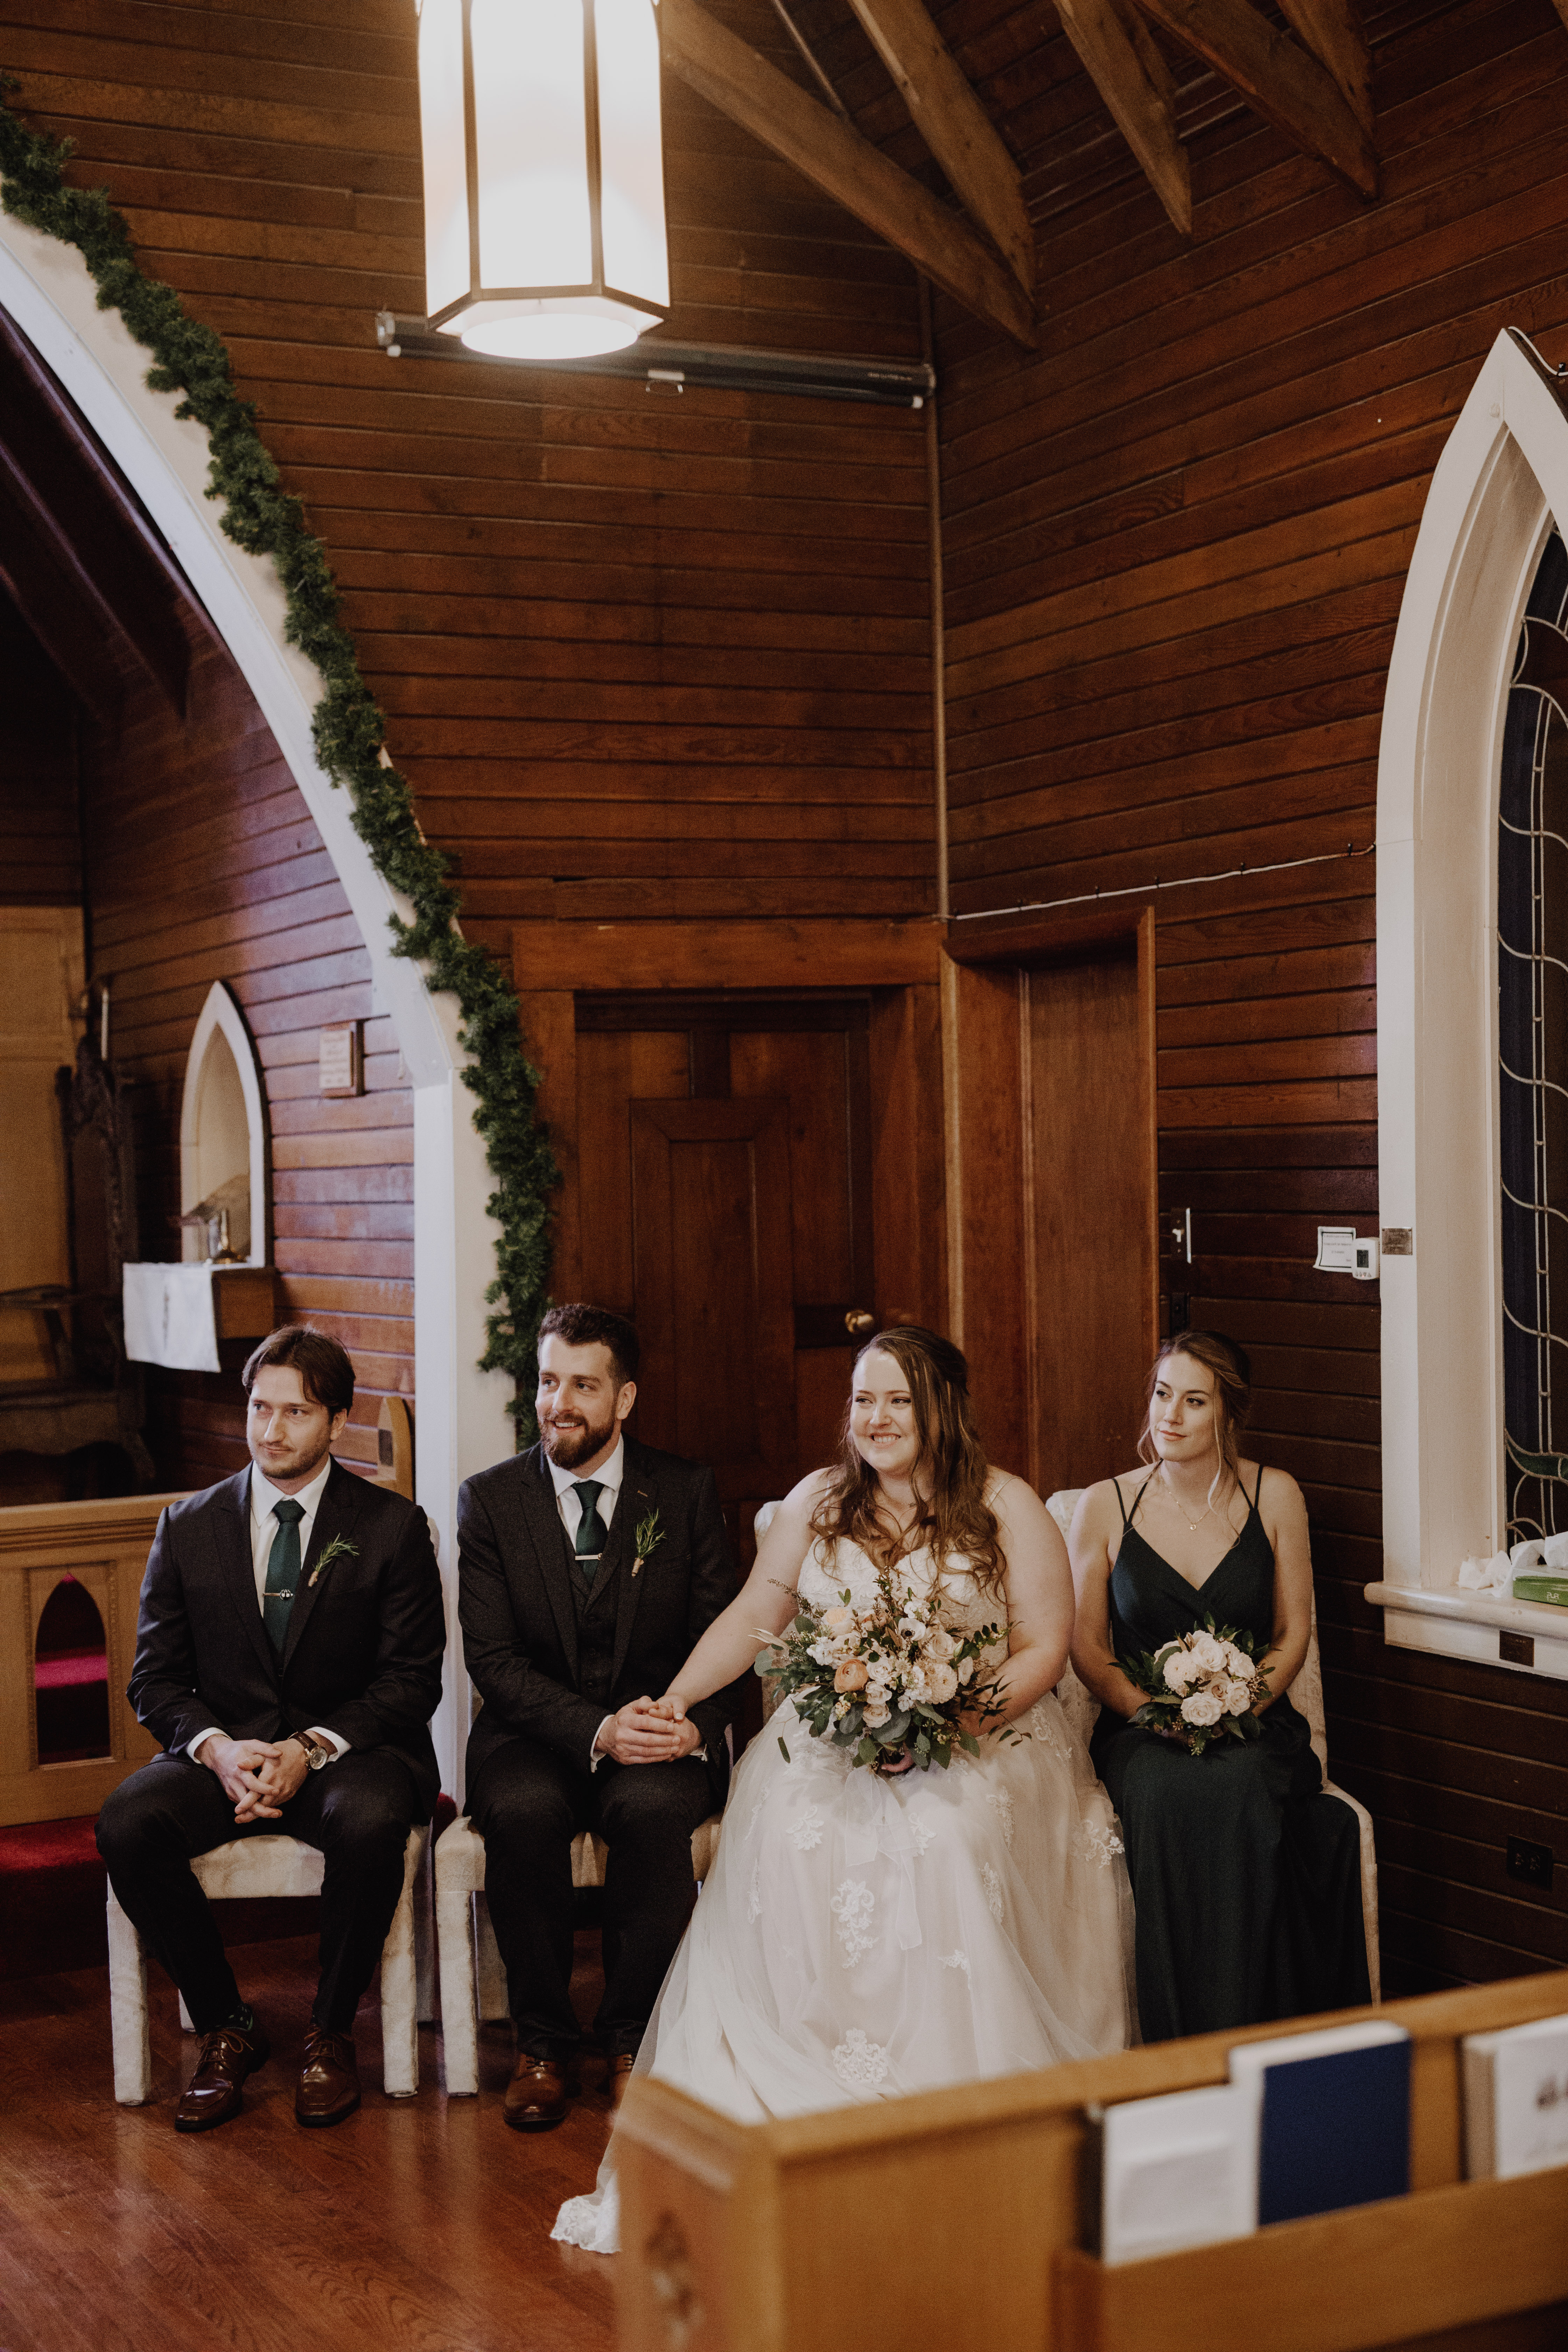 Banff Wedding - rustic wedding